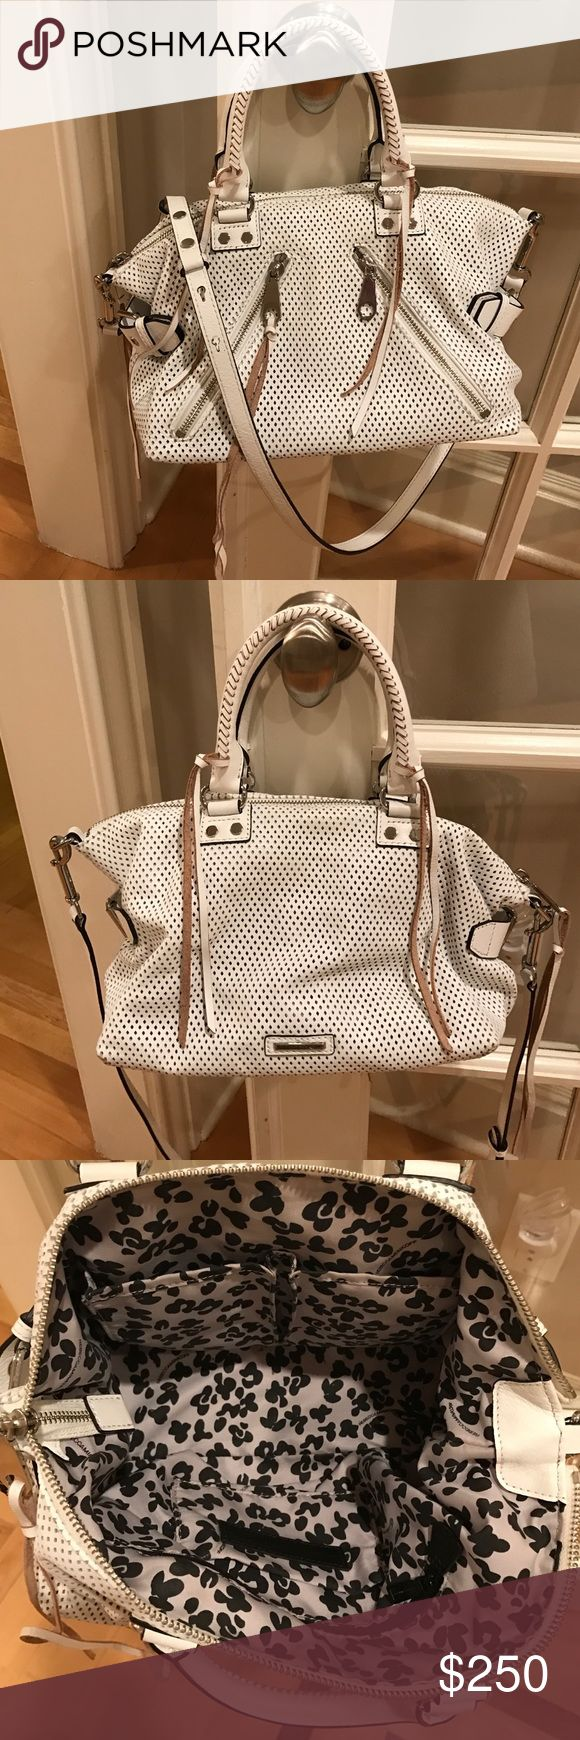 Rebecca minkoff purse White Rebecca minkoff bag. Comes with hand and shoulder strap so  Can be used as cross body if u prefer.  Excellent condition nwt. Rebecca Minkoff Bags Satchels